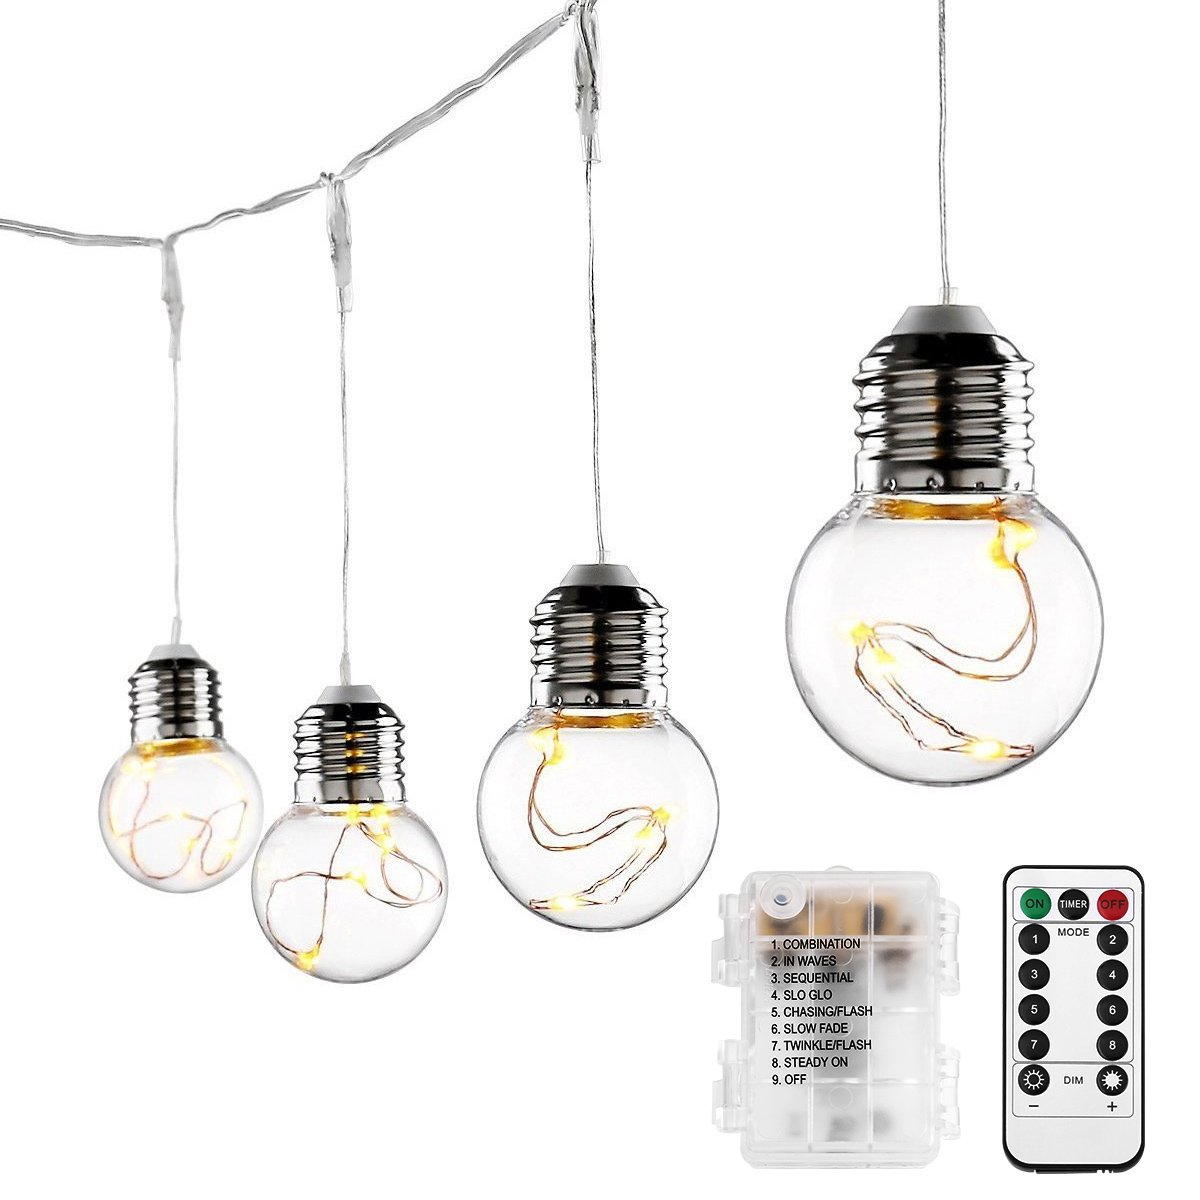 LE 19.69ft/6m LED Globe Copper Wire String Lights Waterproof 25 Units G45 Bulbs Plastic Warm White Indoor Outdoor Garden Patio Christmas Tree Holiday Festival Decoration Lighting EVER 4300018-WW-US